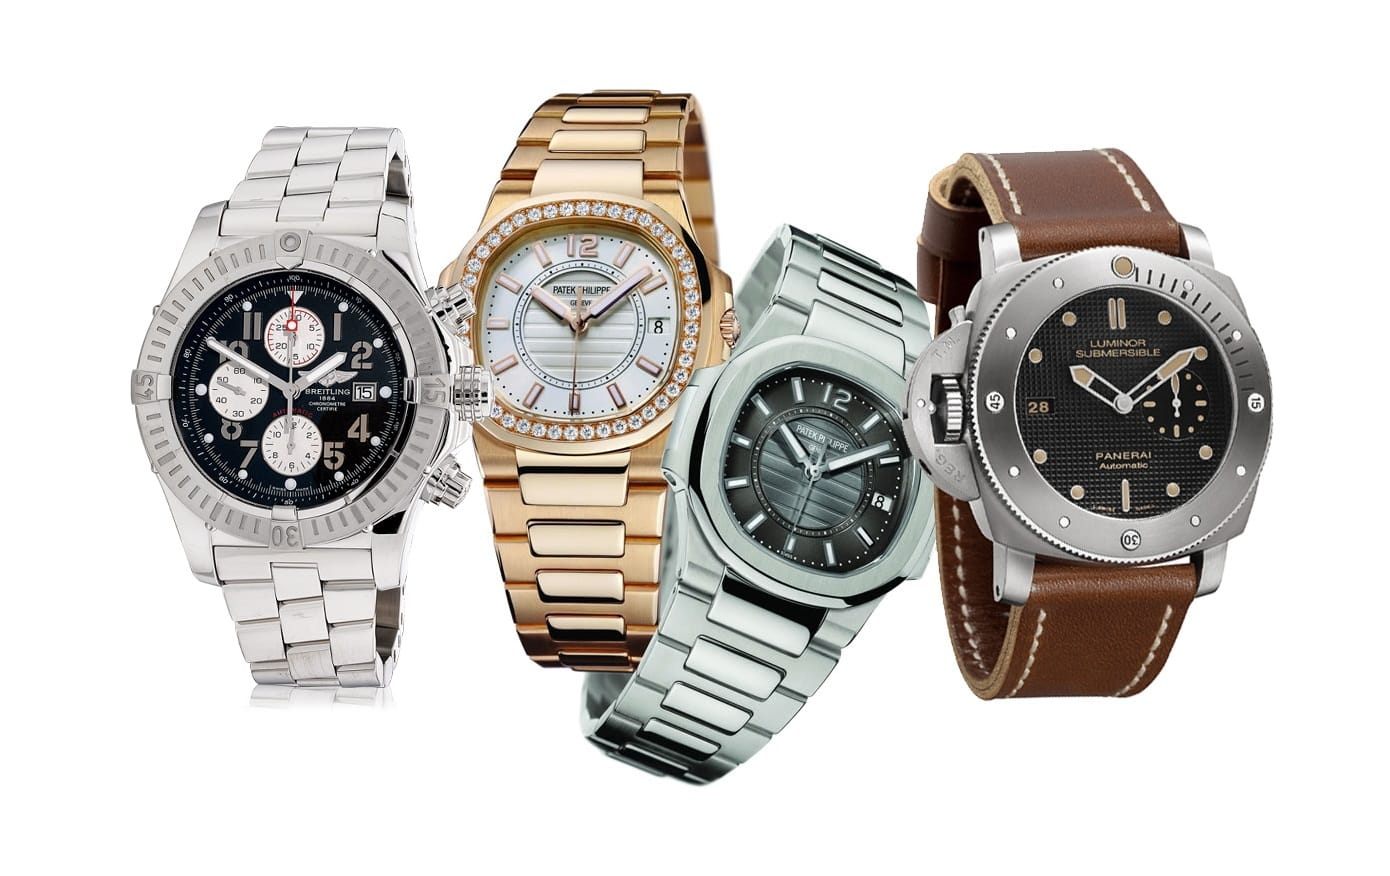 Other Watch Brands